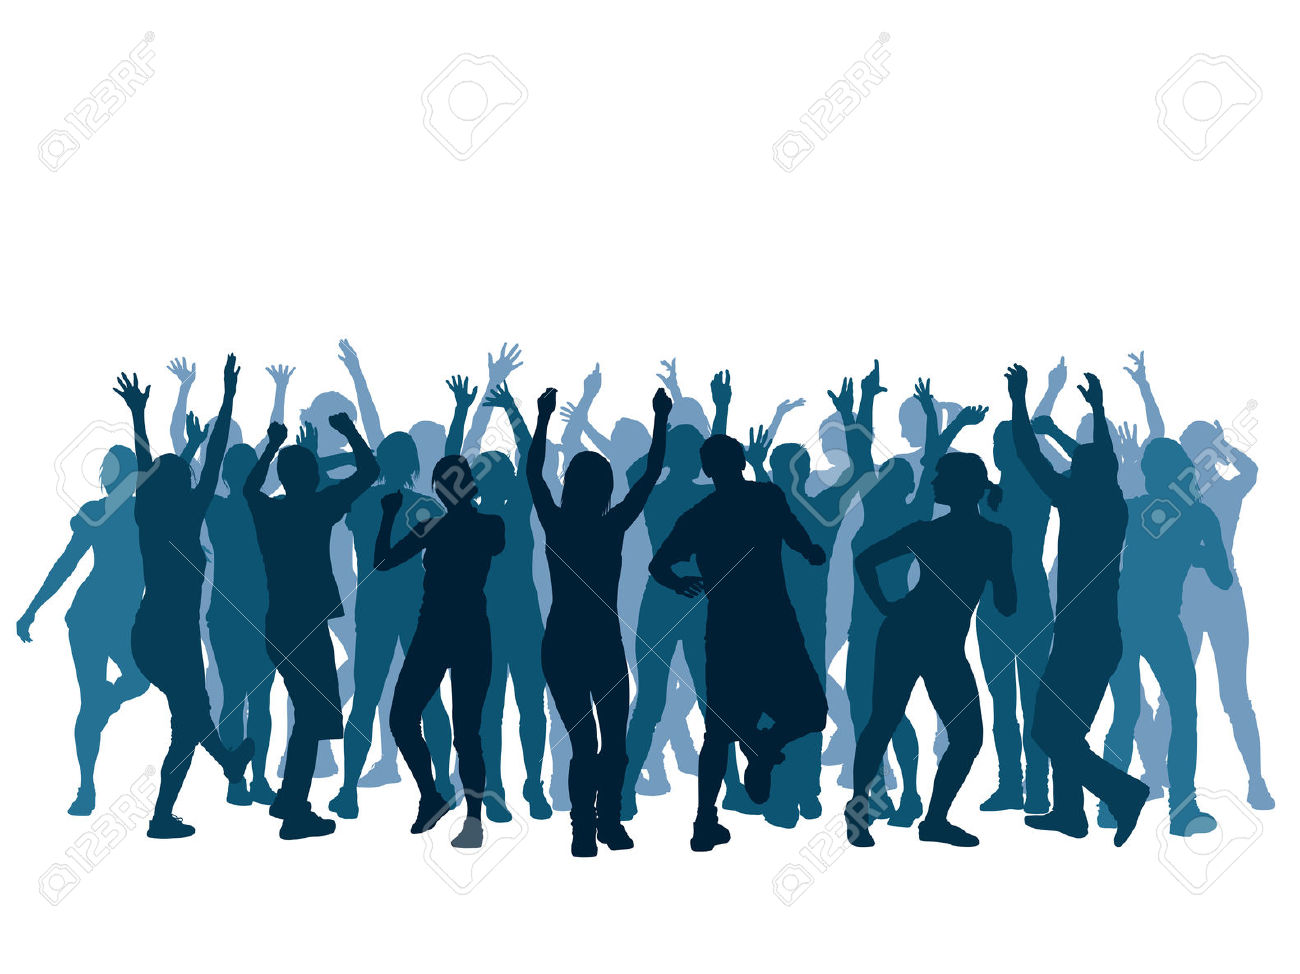 Club clipart group dancing Cliparts Clipart Cliparts and Inspiration